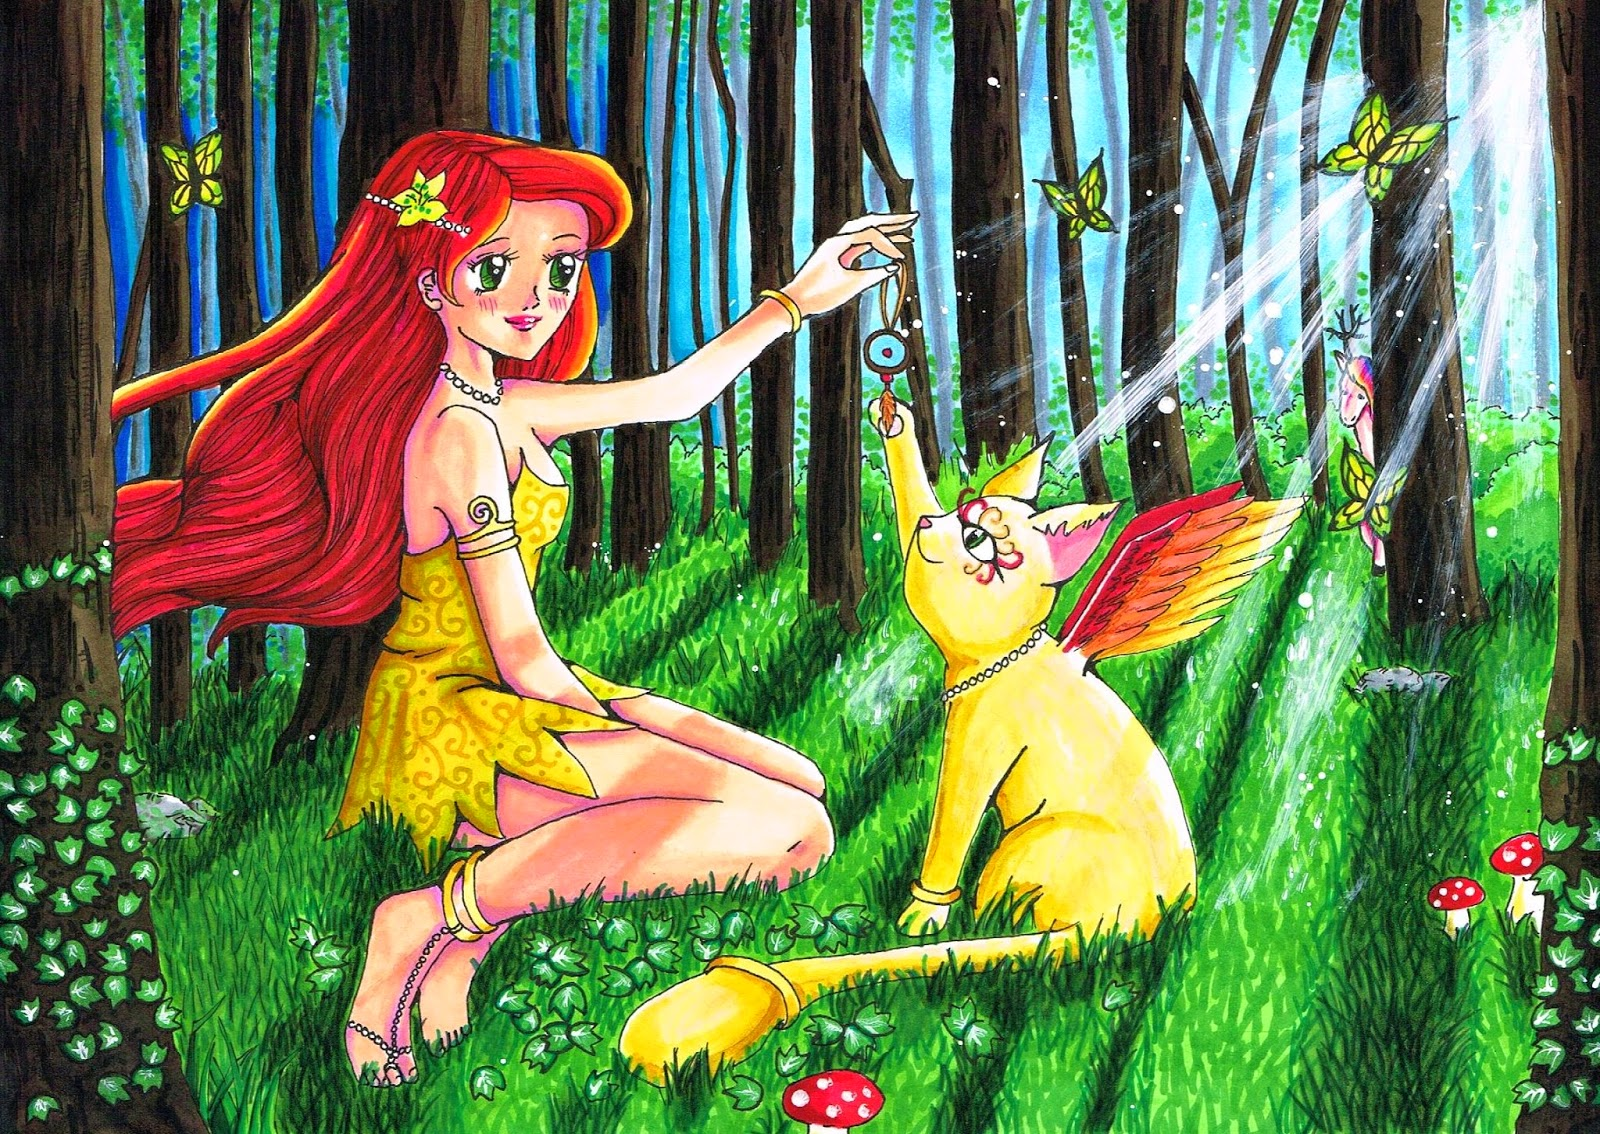 Magical Friends Fantasy forrest wald